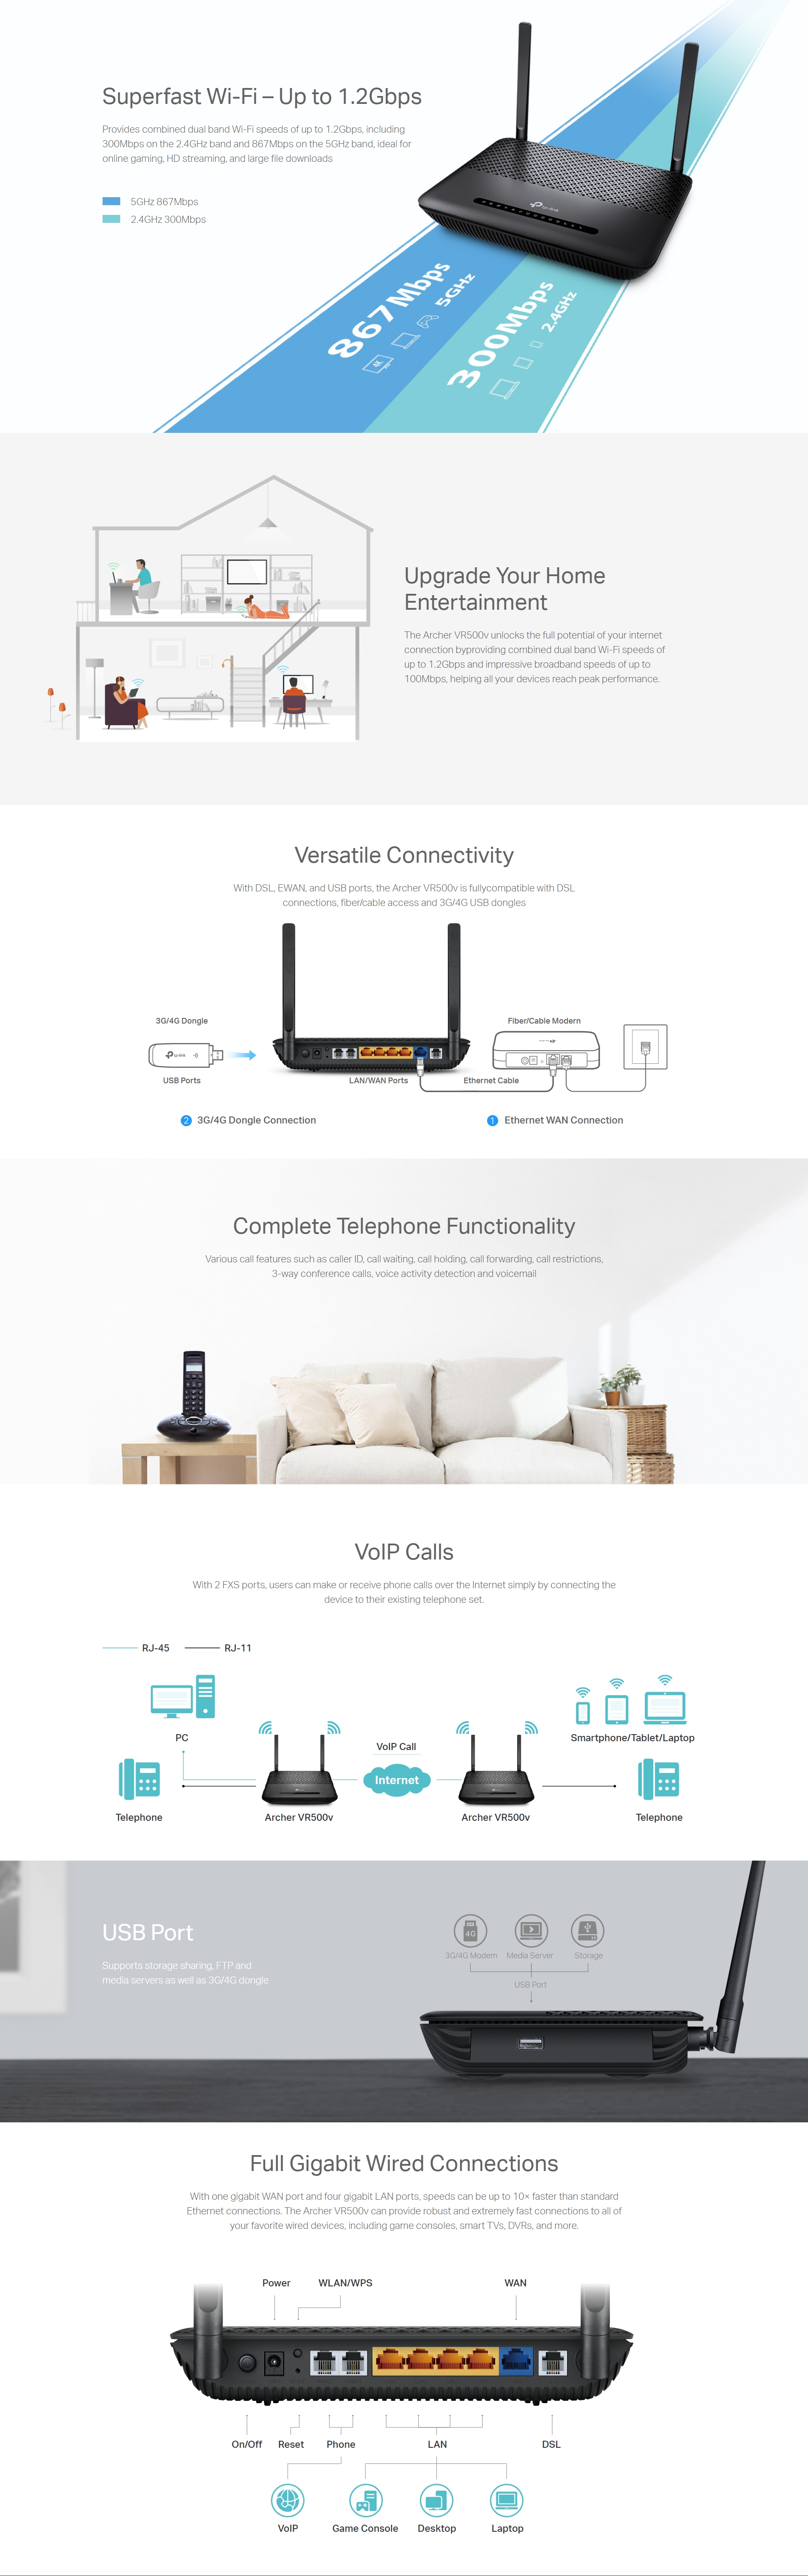 A large marketing image providing additional information about the product TP-Link Archer VR500v AC1200 Wireless Dual Band Gigabit VoIP VDSL/ADSL Modem Router - Additional alt info not provided